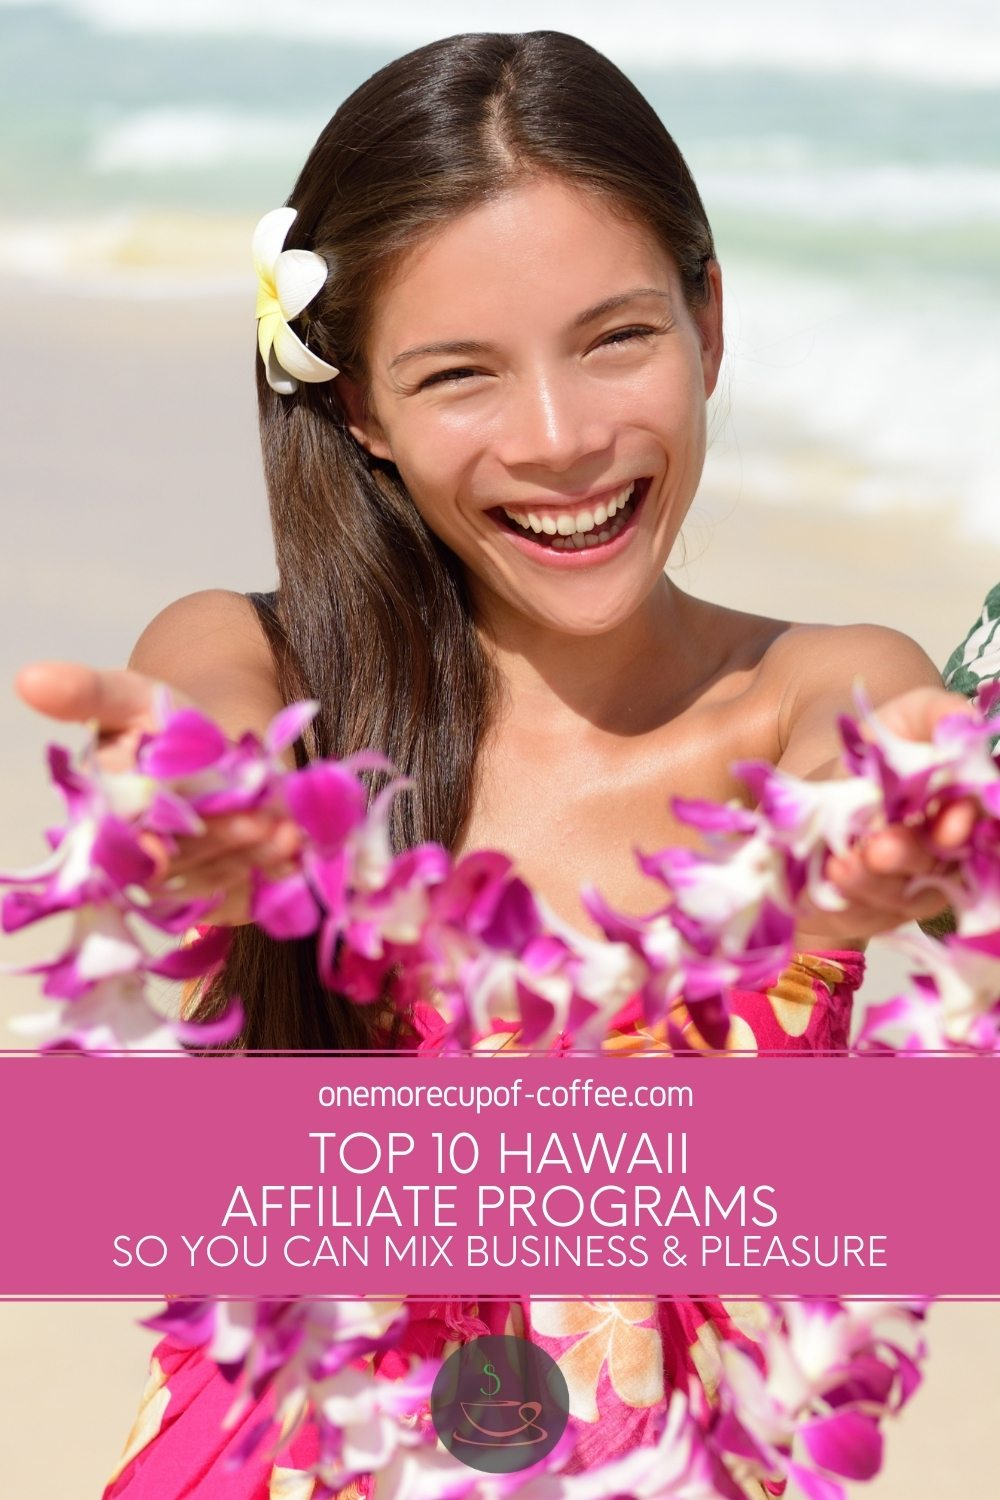 Hawaiian girl holding out a pink garland, with text overlay